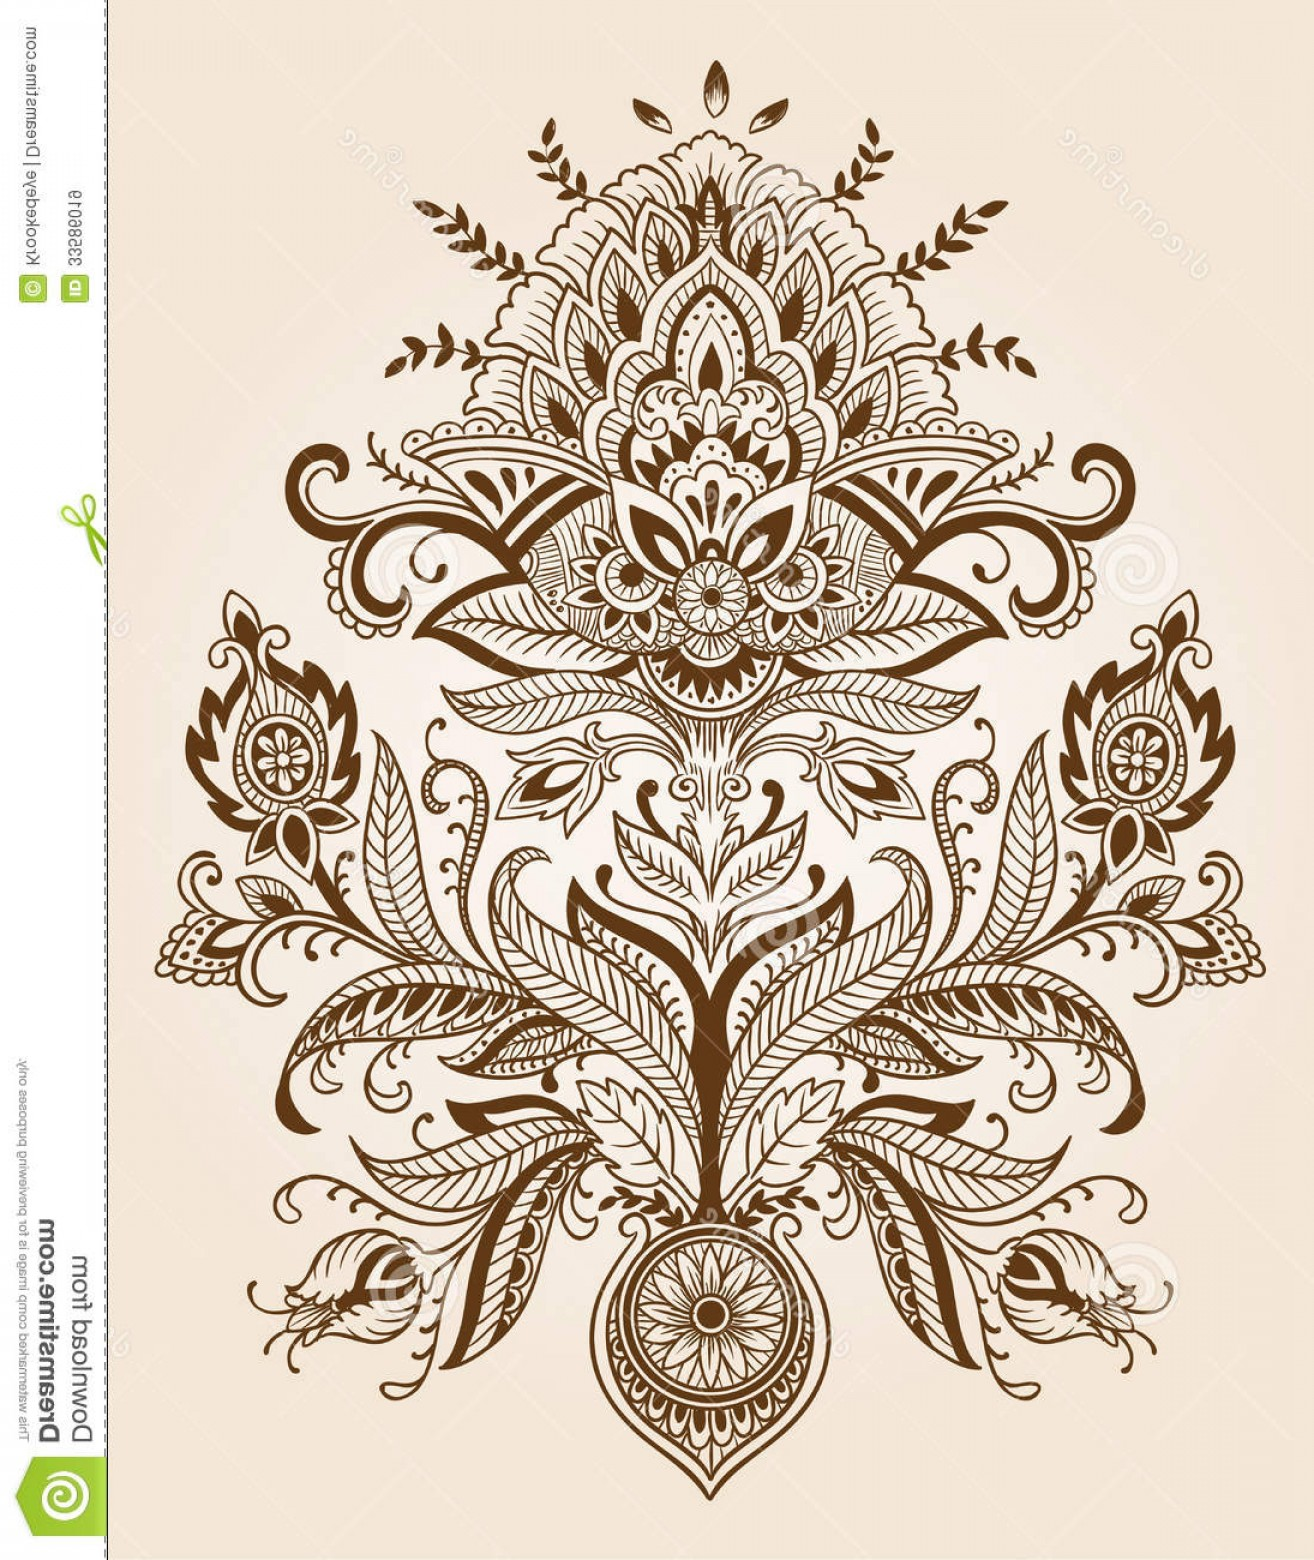 Vector Art Henna: Royalty Free Stock Images Henna Lace Paisley Flower Vector Illustration Image